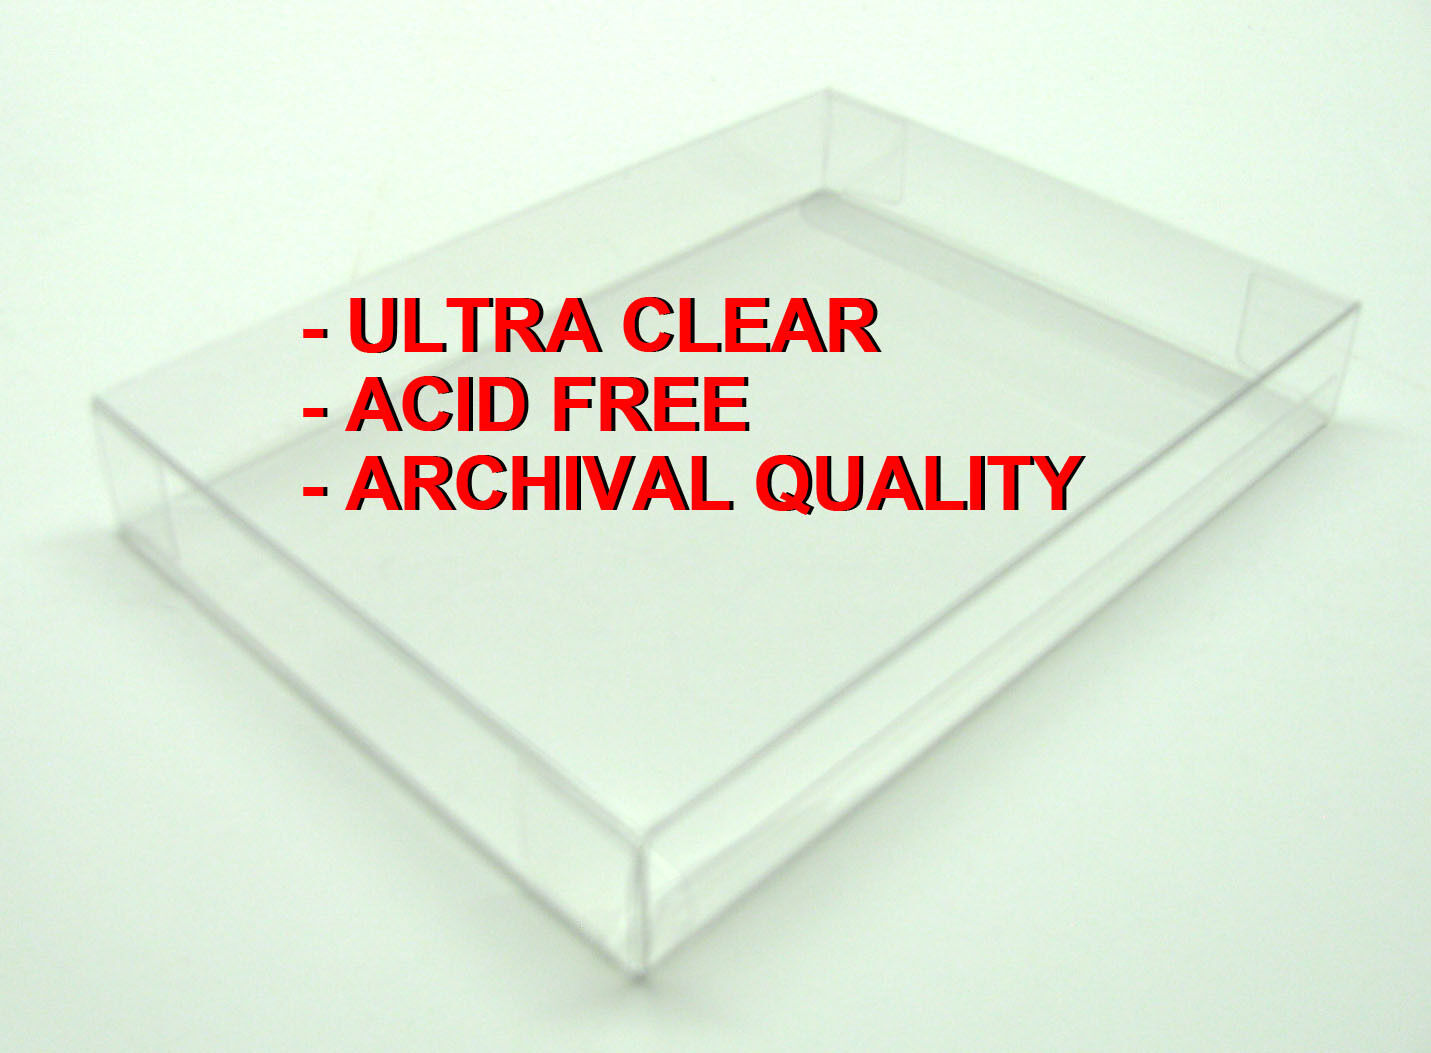 50x BLU-RAY CLEAR PROTECTIVE BOX PROTECTORS - ARCHIVAL QUALITY - FREE SHIPPING!